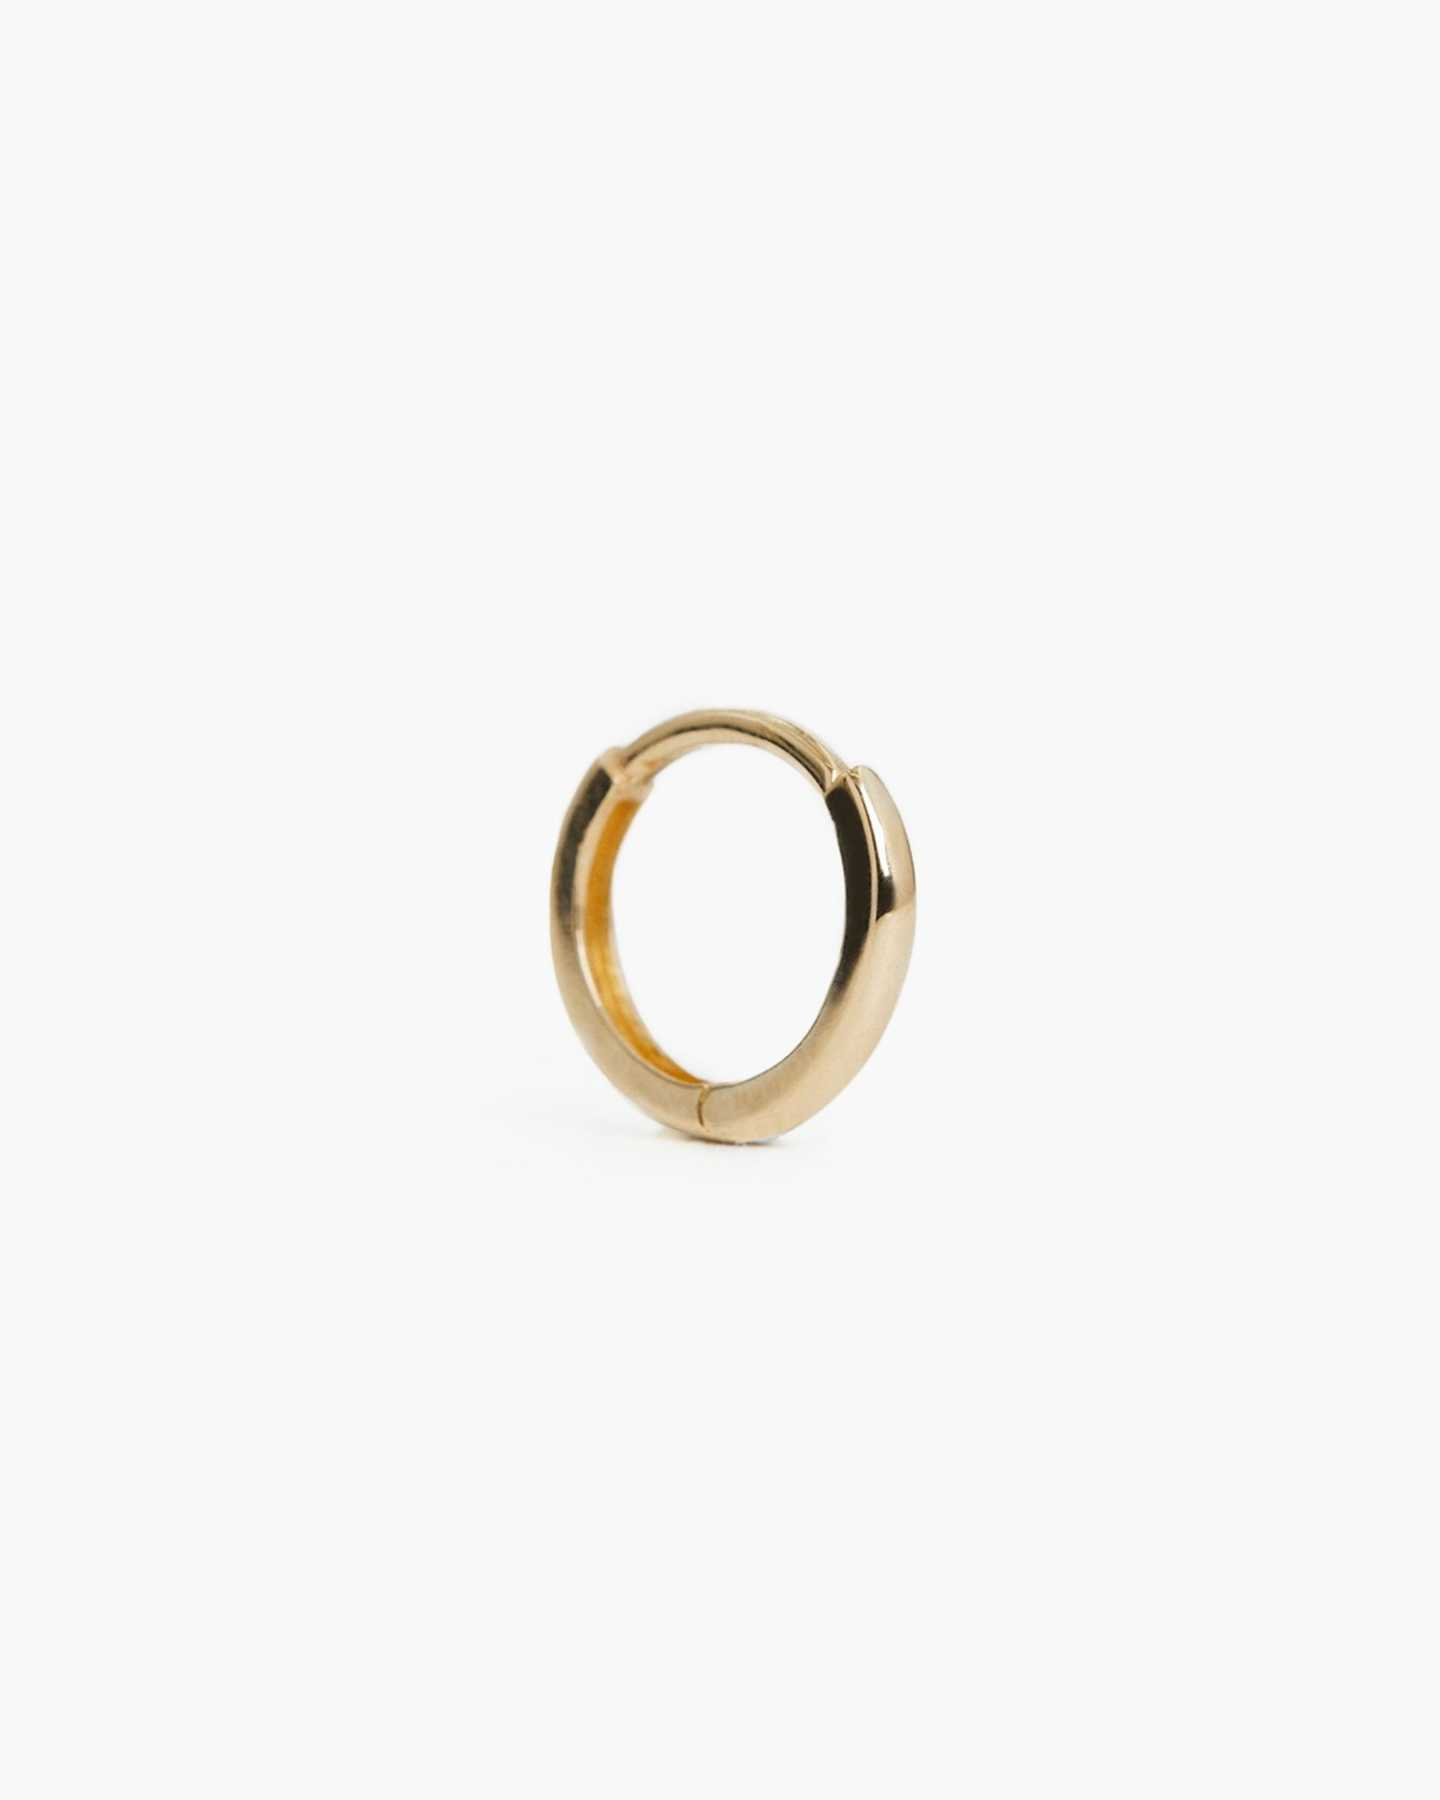 Pair With - 14k Gold Solo Mini Hoop - White Gold